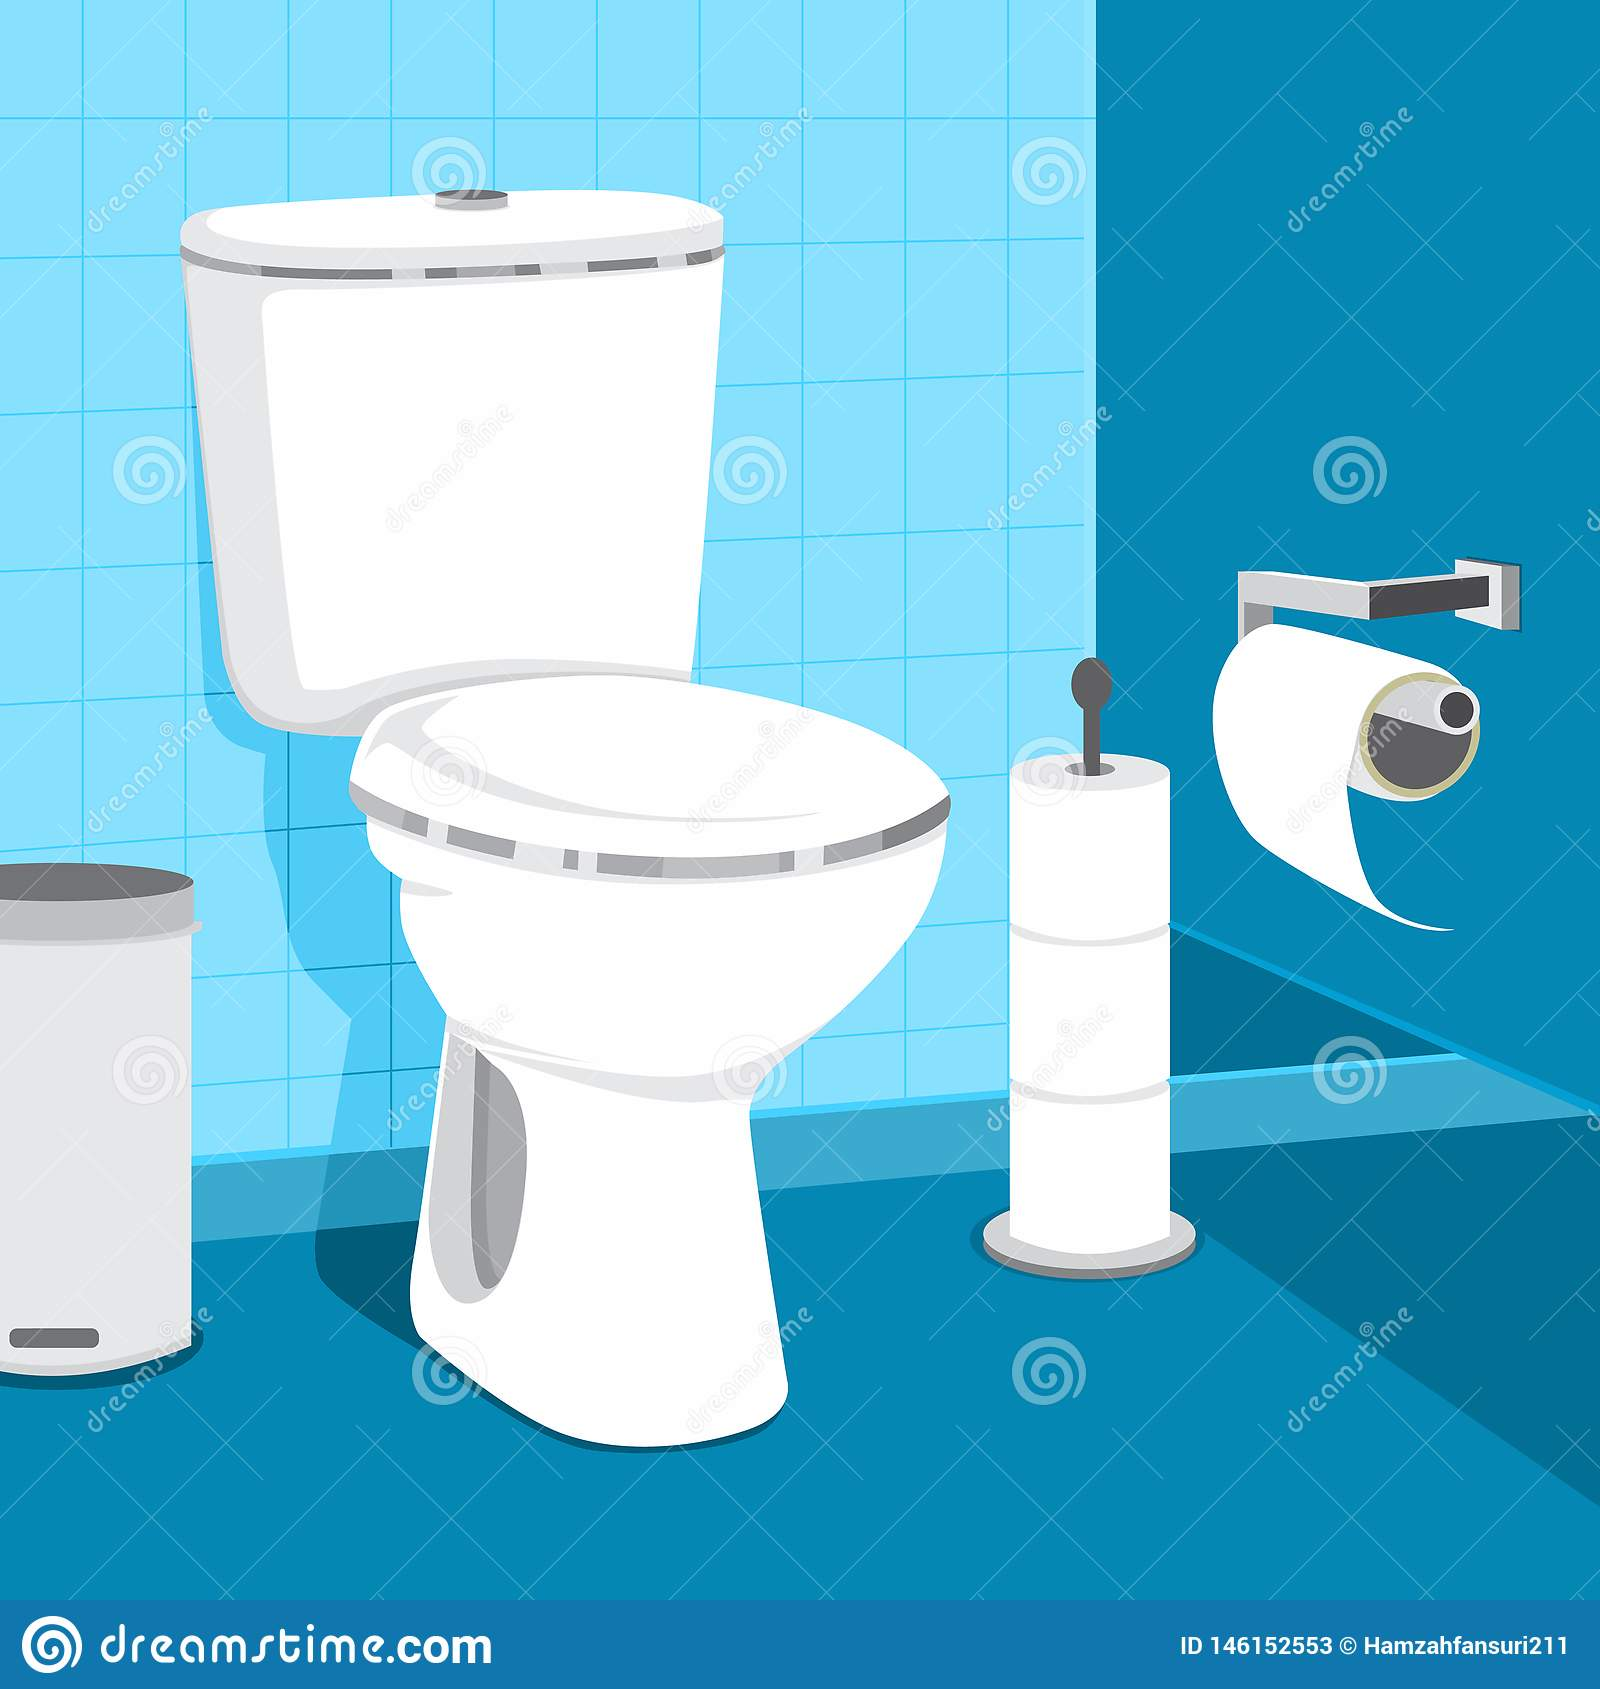 Toilet Bowl Vector Illustration. Toilet Paper And Trash Can